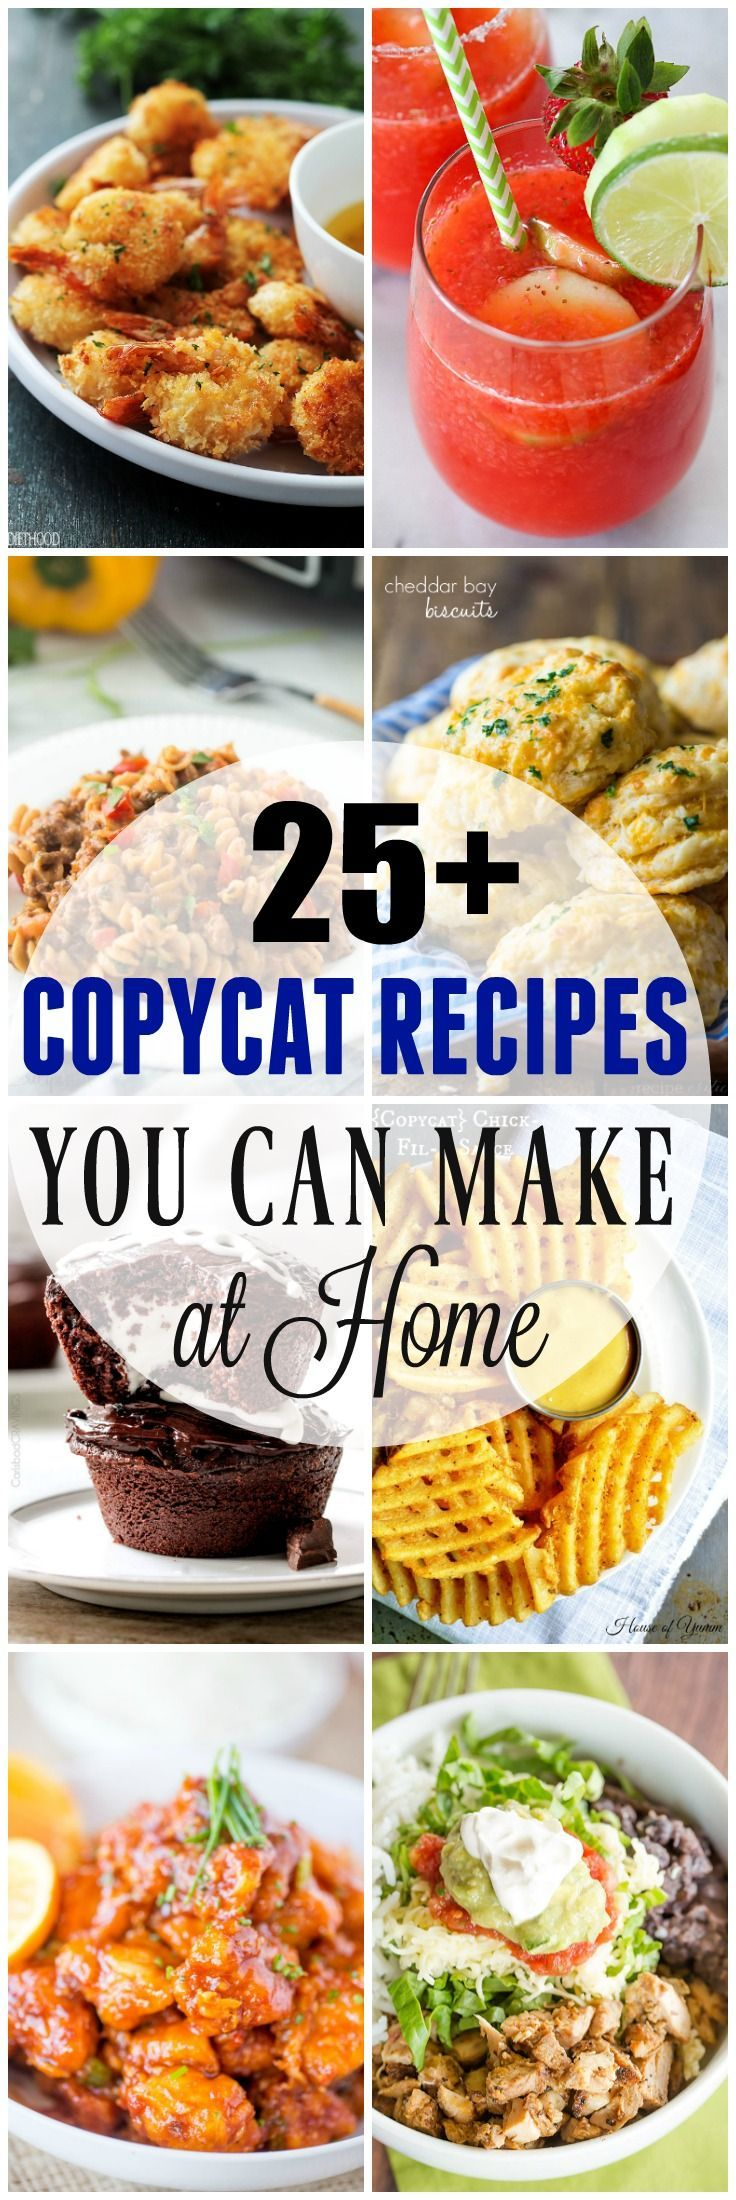 25 + Copycat Recipes to Make at Home! Eating out is fun